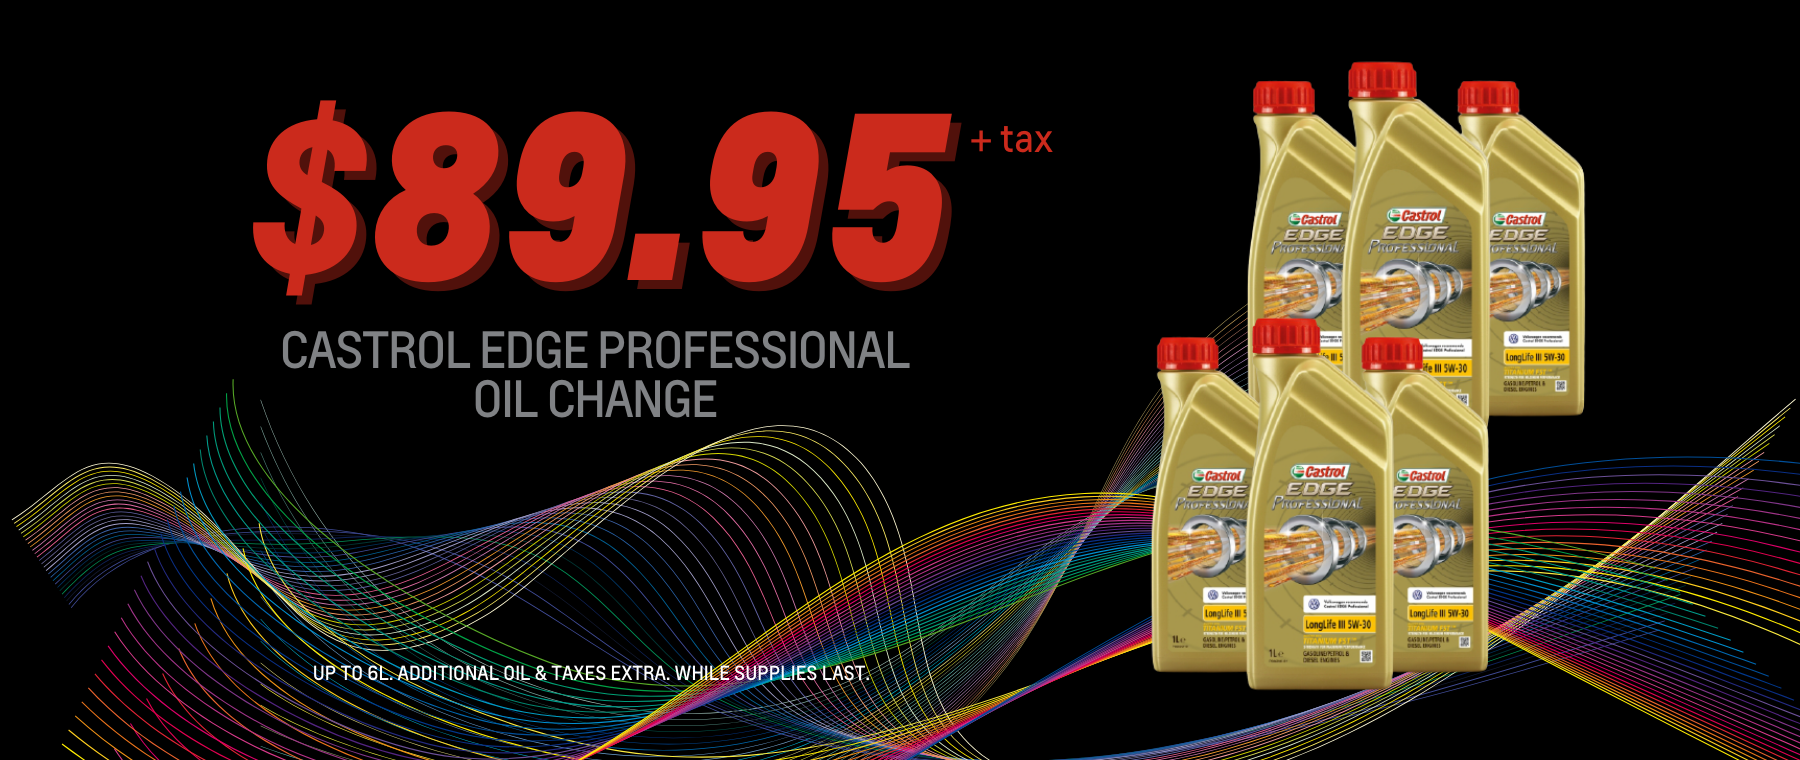 CASTROL EDGE PROFESSIONAL OIL CHANGE – Service Specials Page